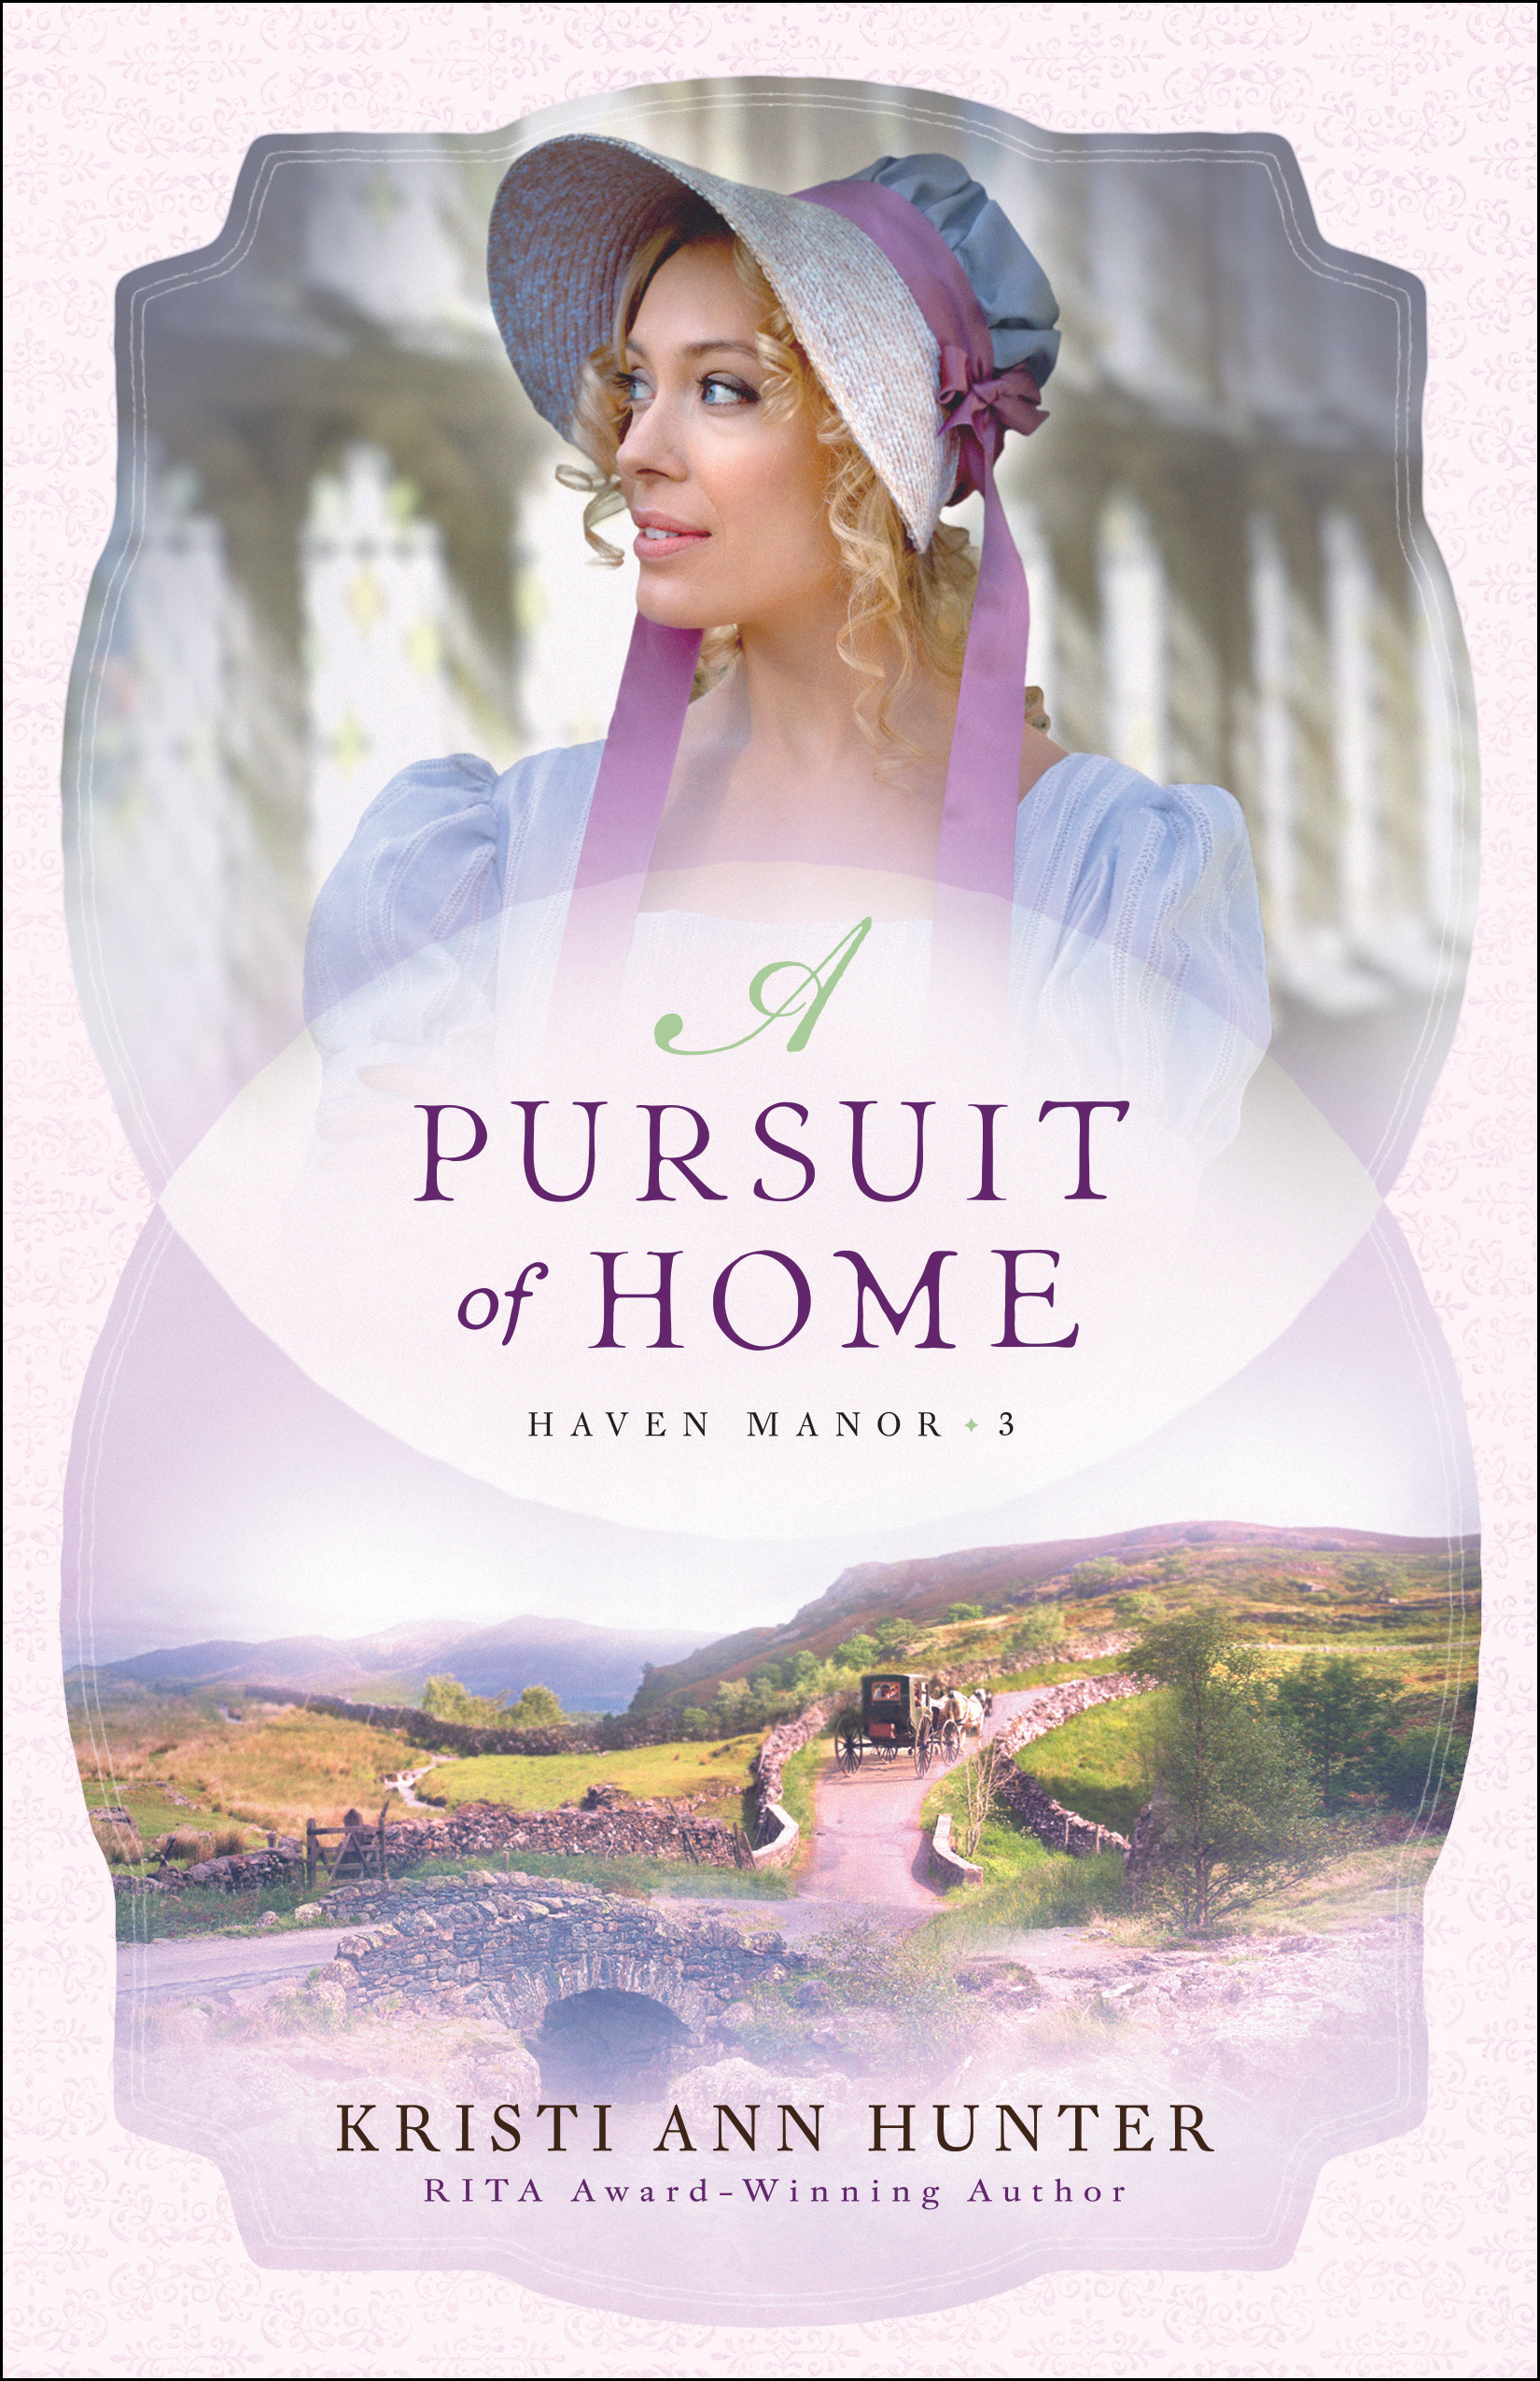 Book review of A Pursuit Of Home by Kristi Ann Hunter (Bethany House) by papertapepins